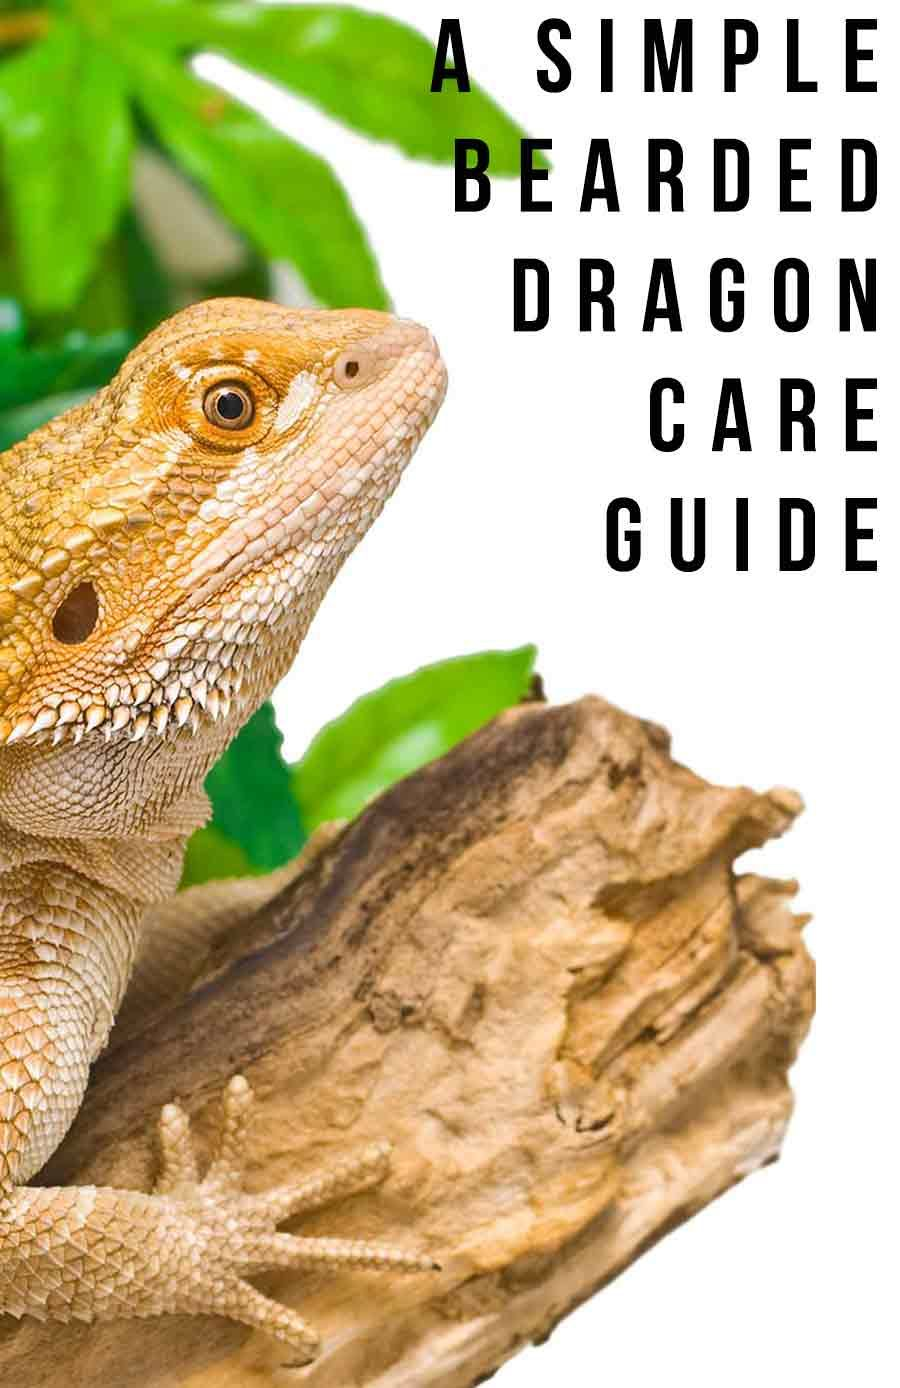 How To Care For A Bearded Dragon A Simple Bearded Dragon